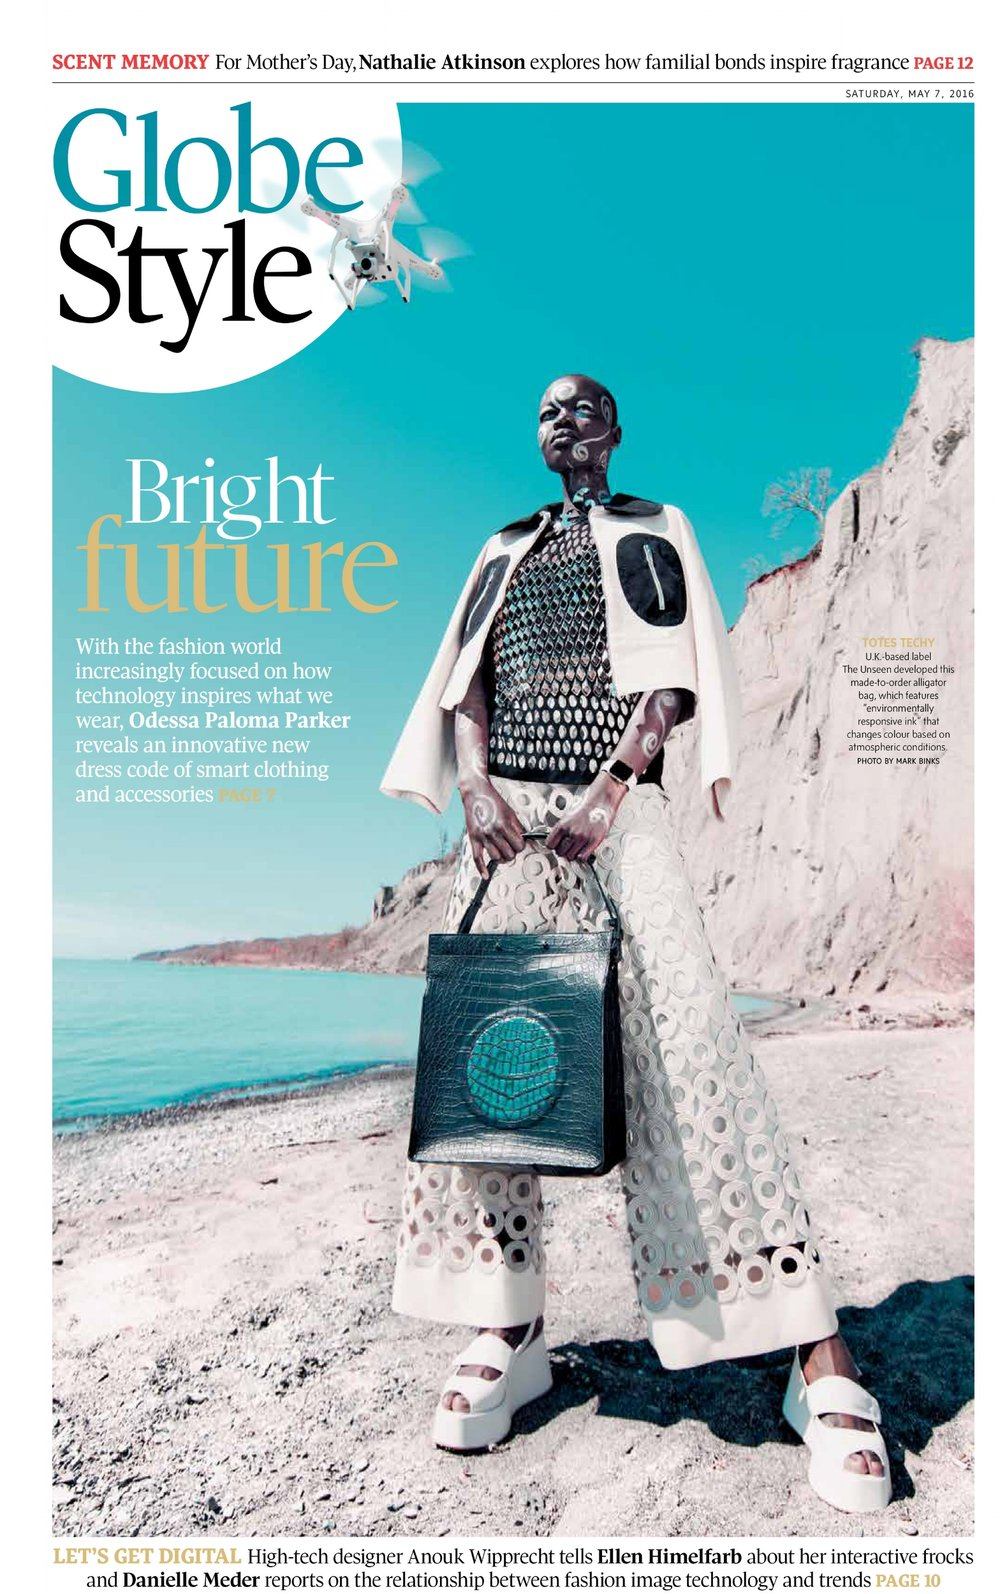 Globe Style May 2016 READ MORE